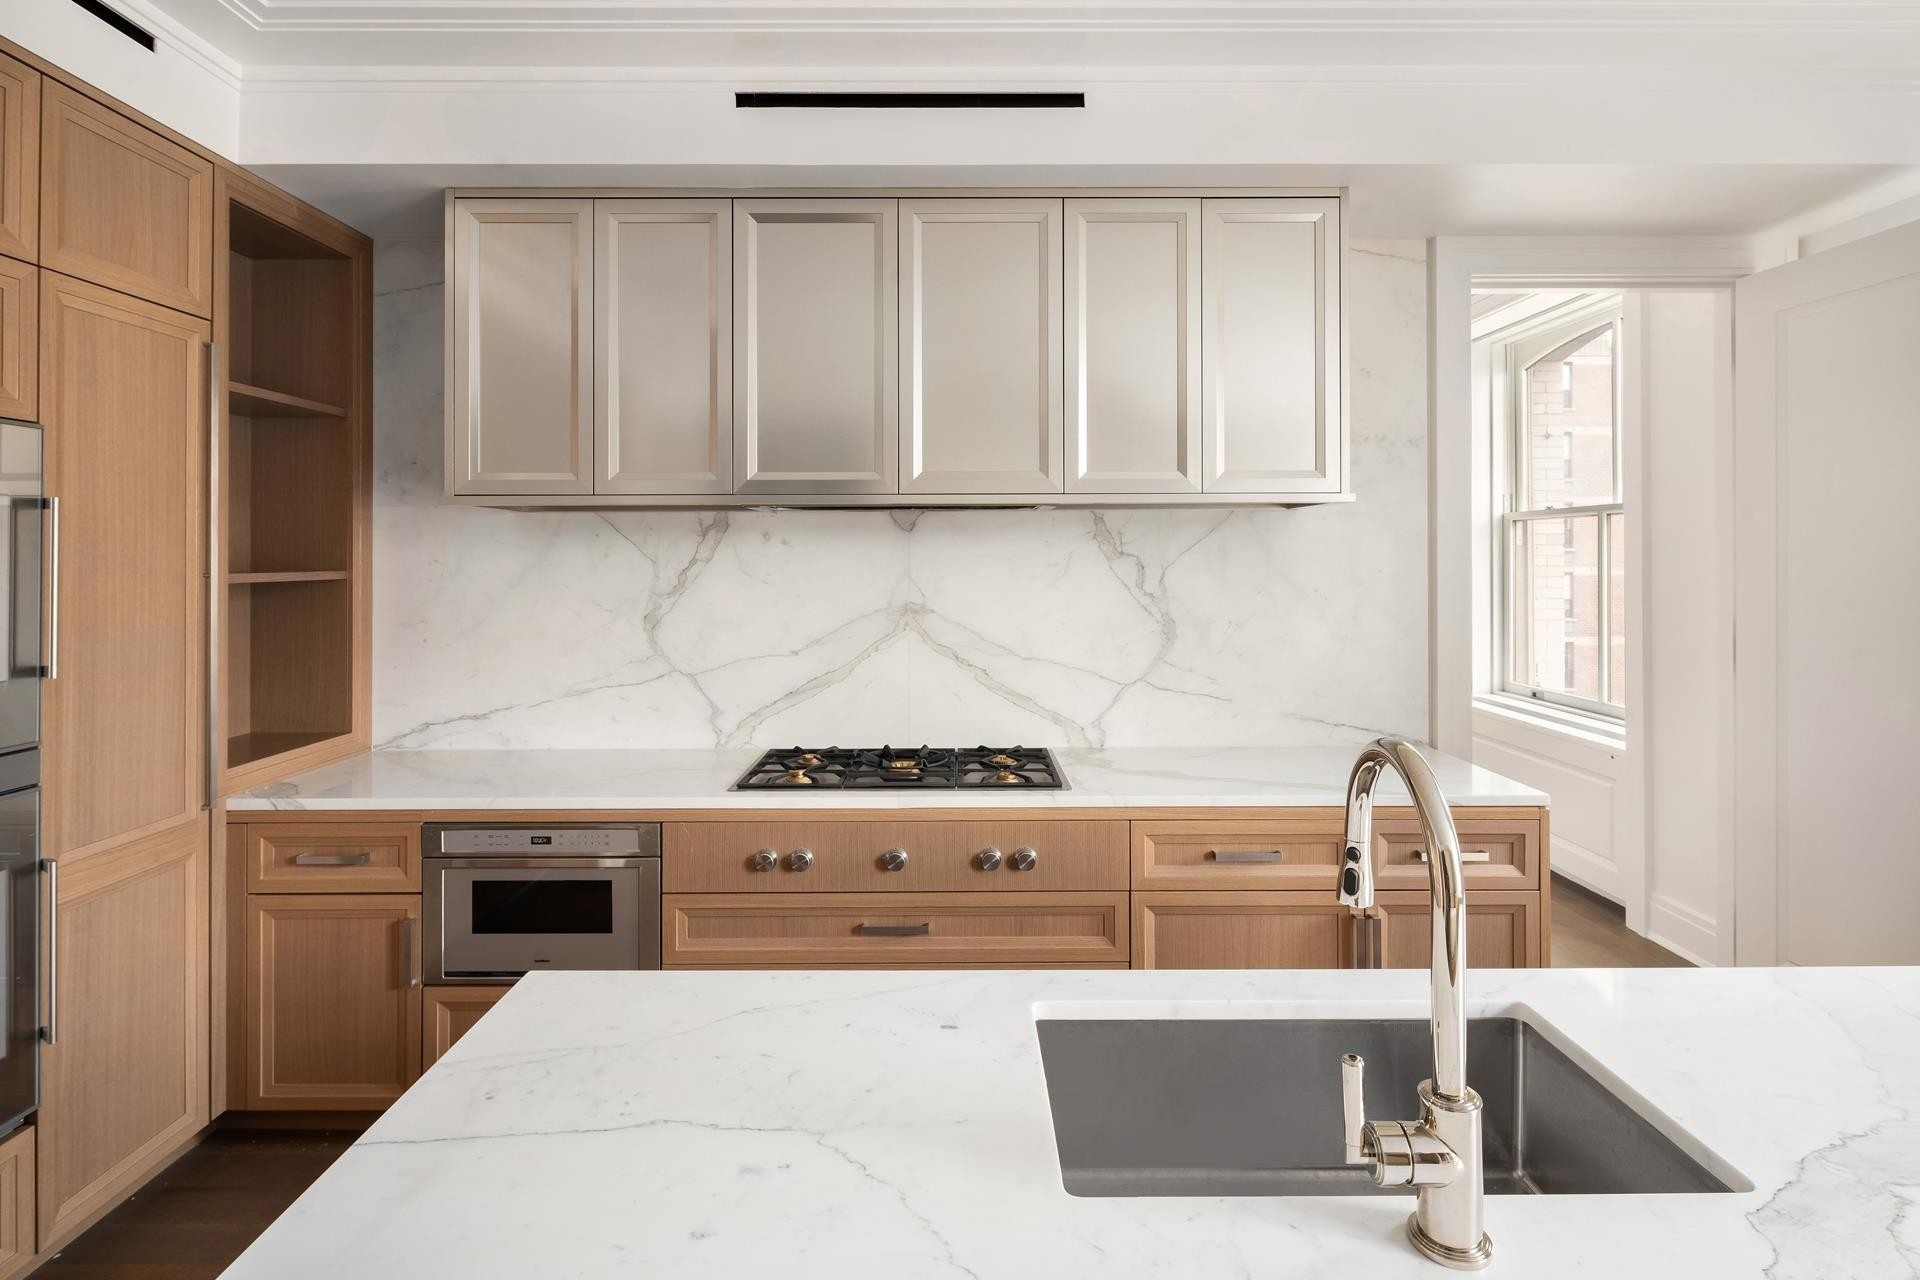 4. Condominiums for Sale at The Belnord, 225 W 86TH ST , 1103 Upper West Side, New York, NY 10024